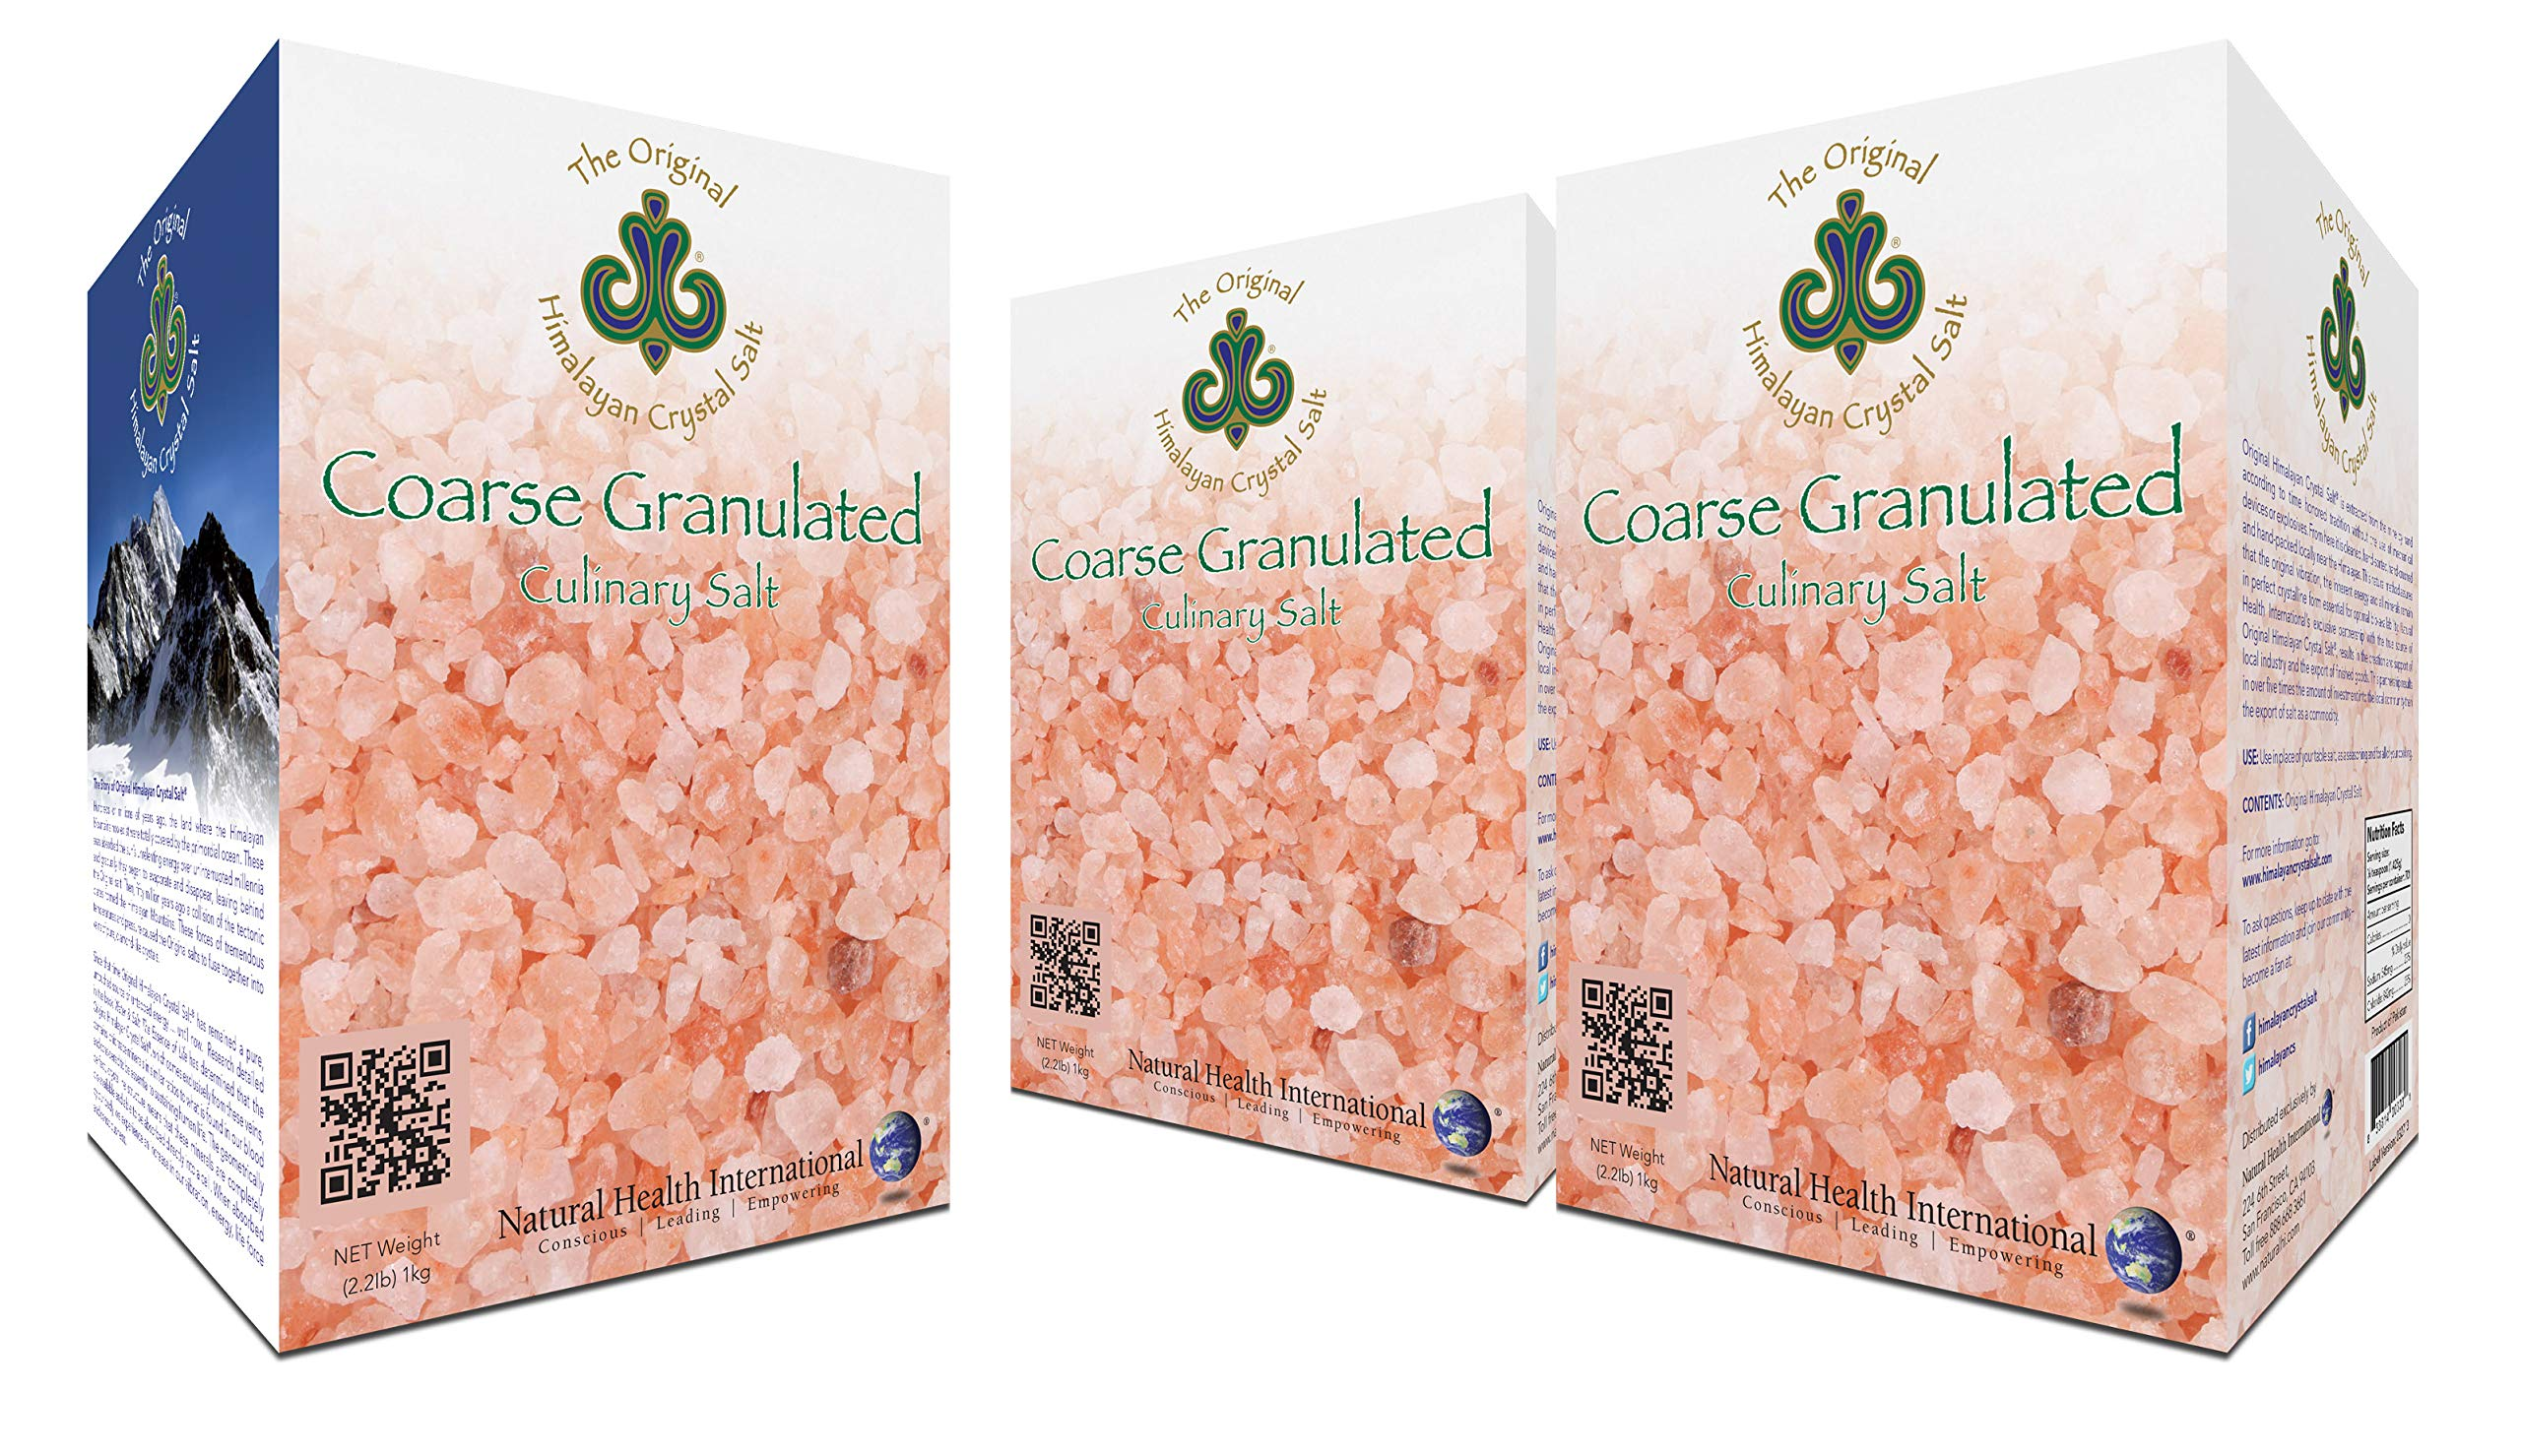 Original Himalayan Crystal Salt - Coarse Granulated - Culinary Salt for Healthy Cooking - Mineral Rich Salt with Great Flavor (3 Pack)